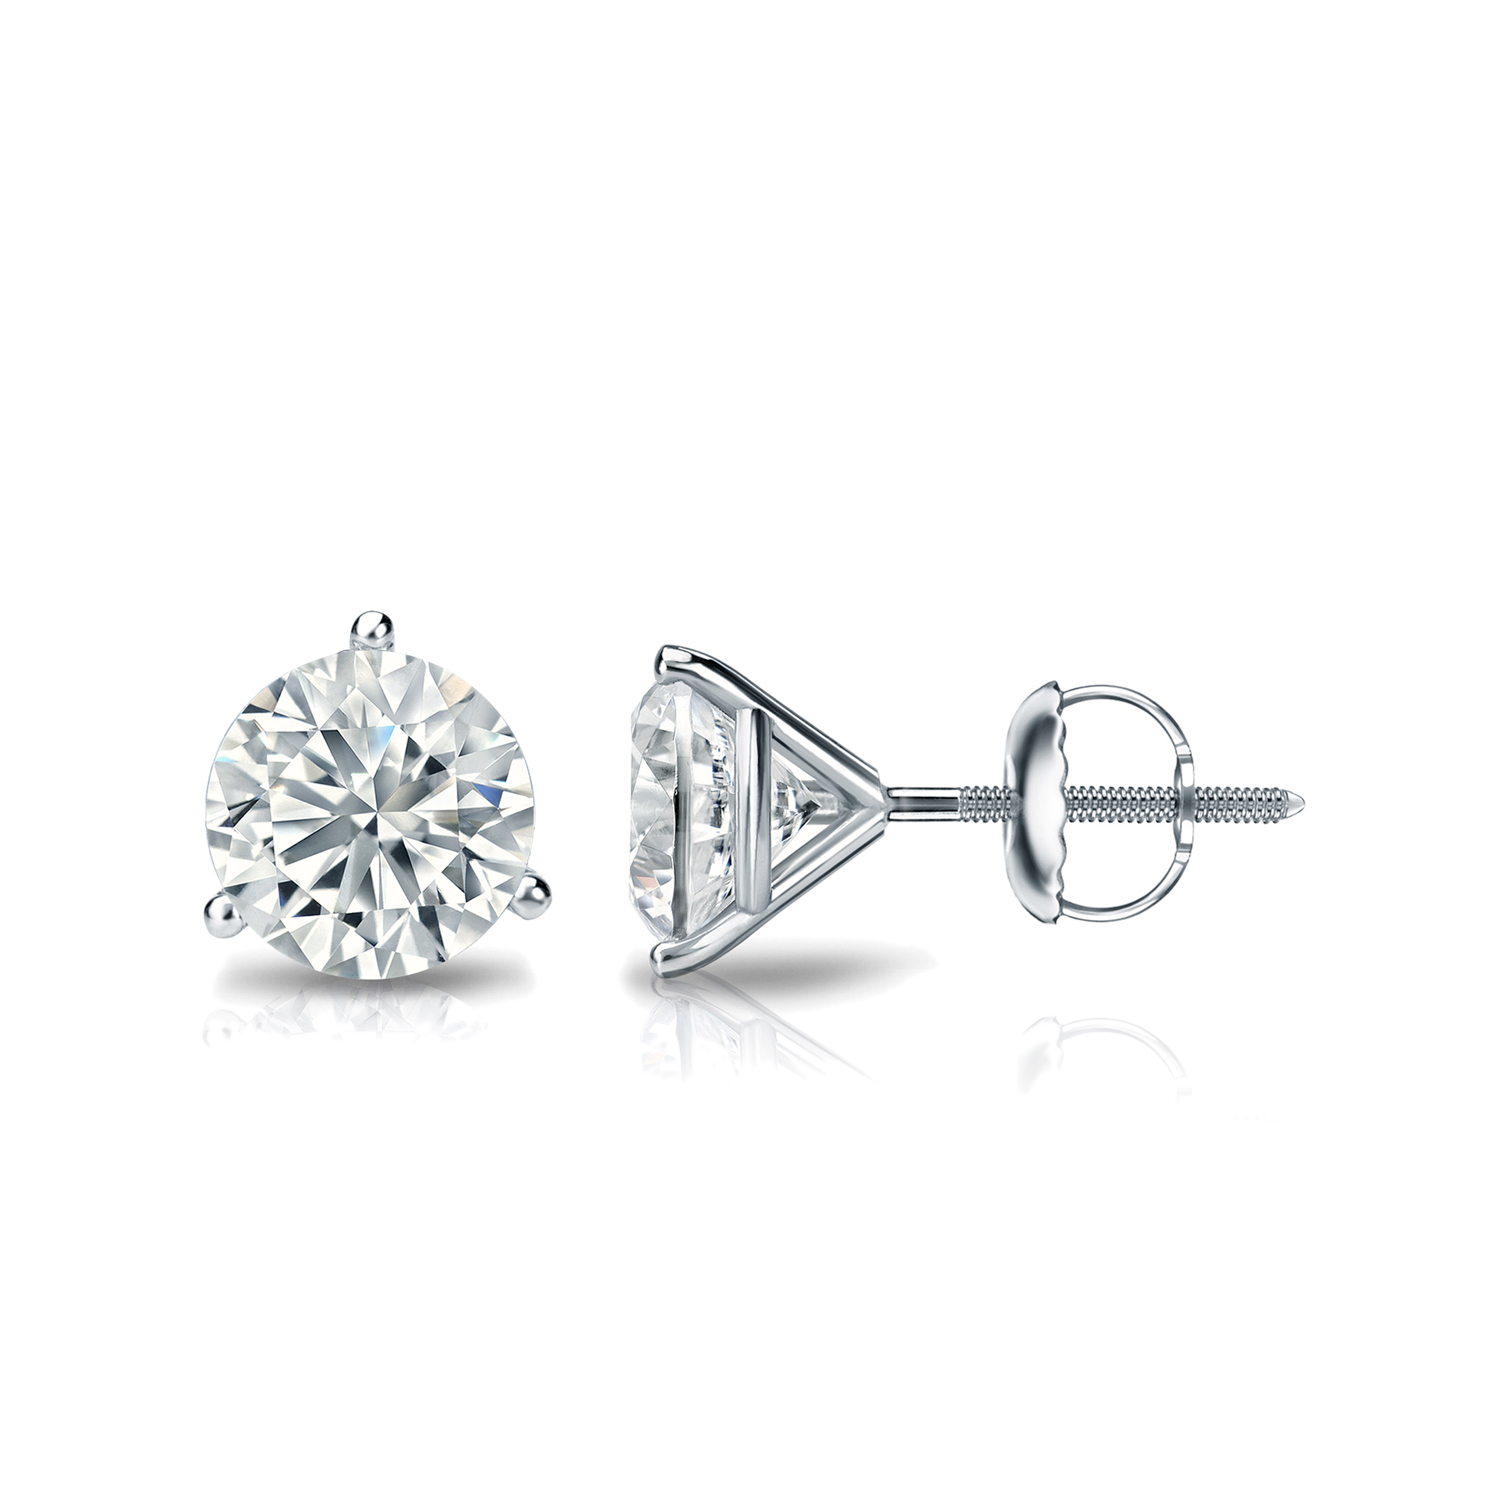 Platinum 4-Prong Basket Round Diamond SINGLE STUD Earring 1//8 cttw J-K, I1-I2